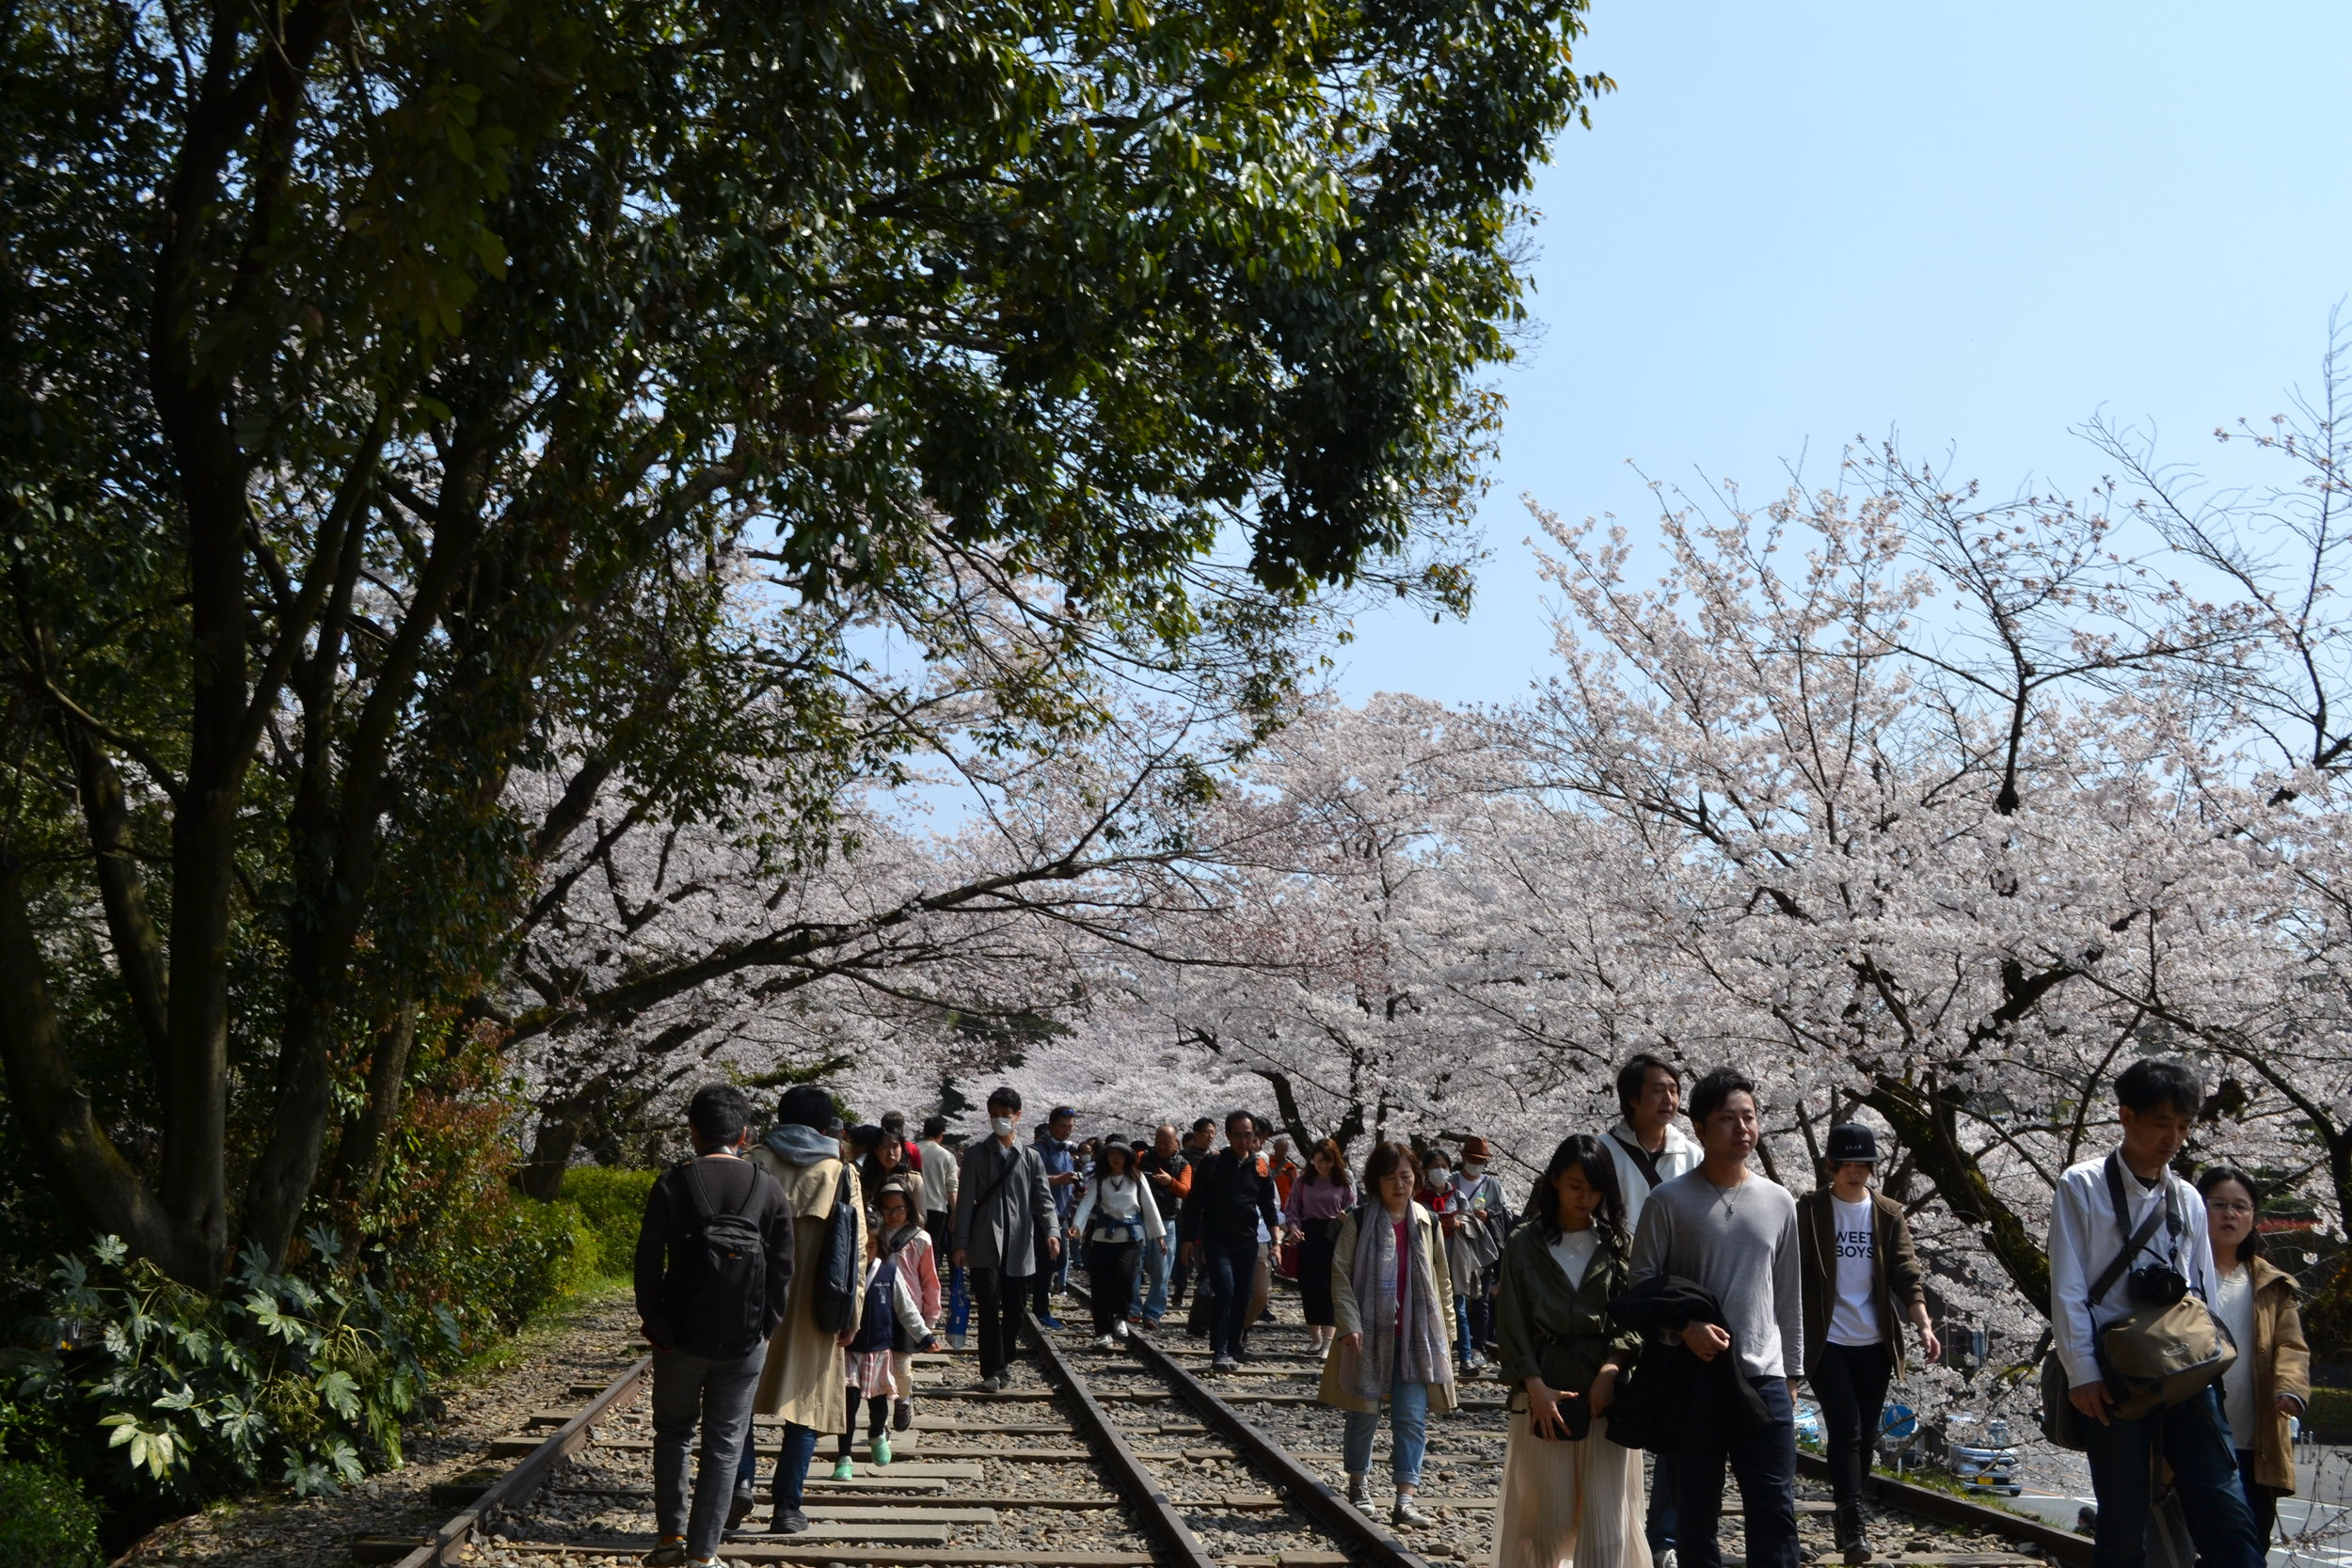 The beginning of the tracks leading up on an incline, with many cherry blossom trees in the distance.